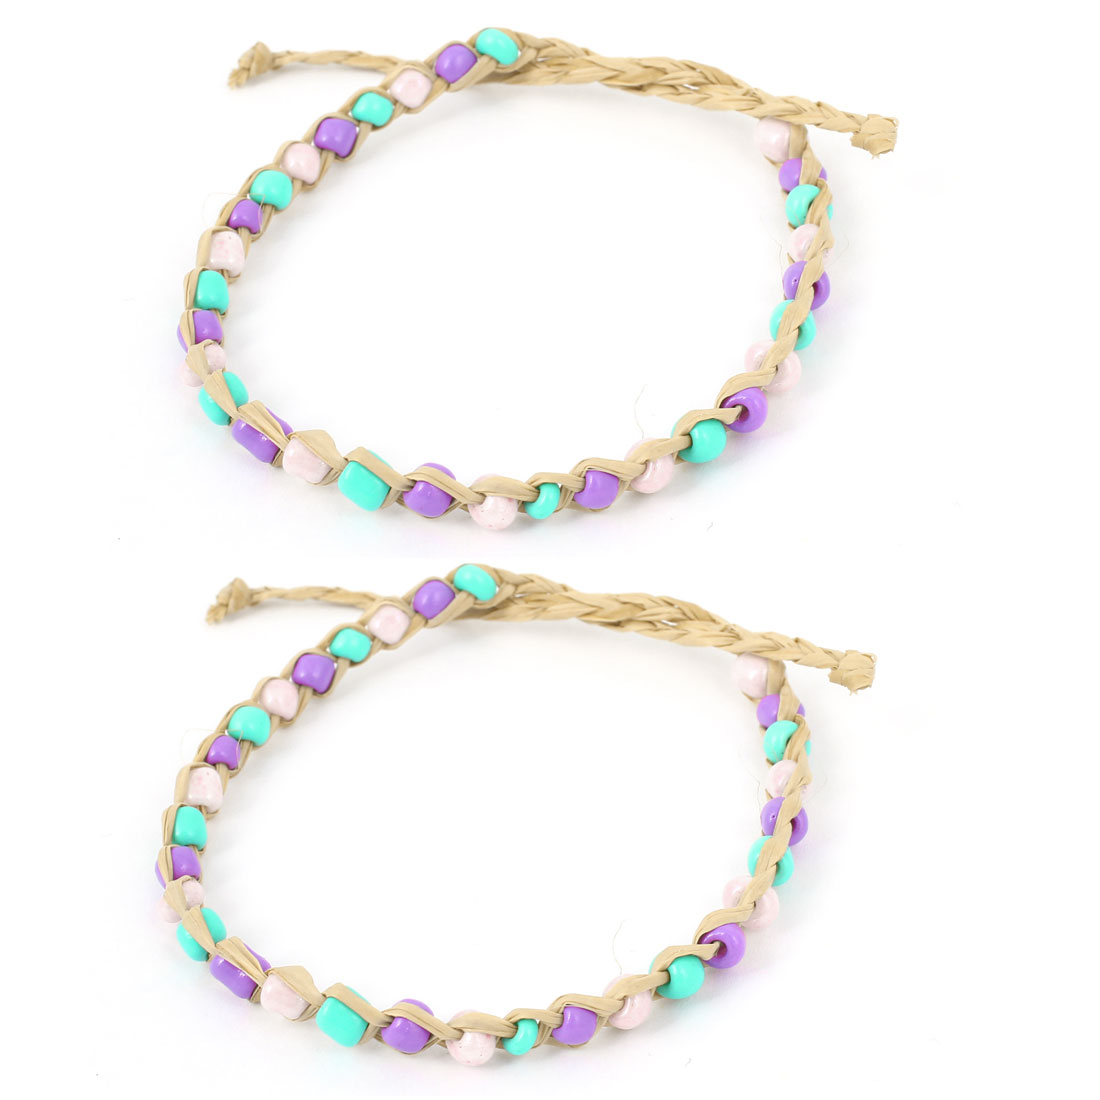 2 Pcs Green Purple Pink Adjustable Hand-knitting Beads Straw Woven Bracelet for Women